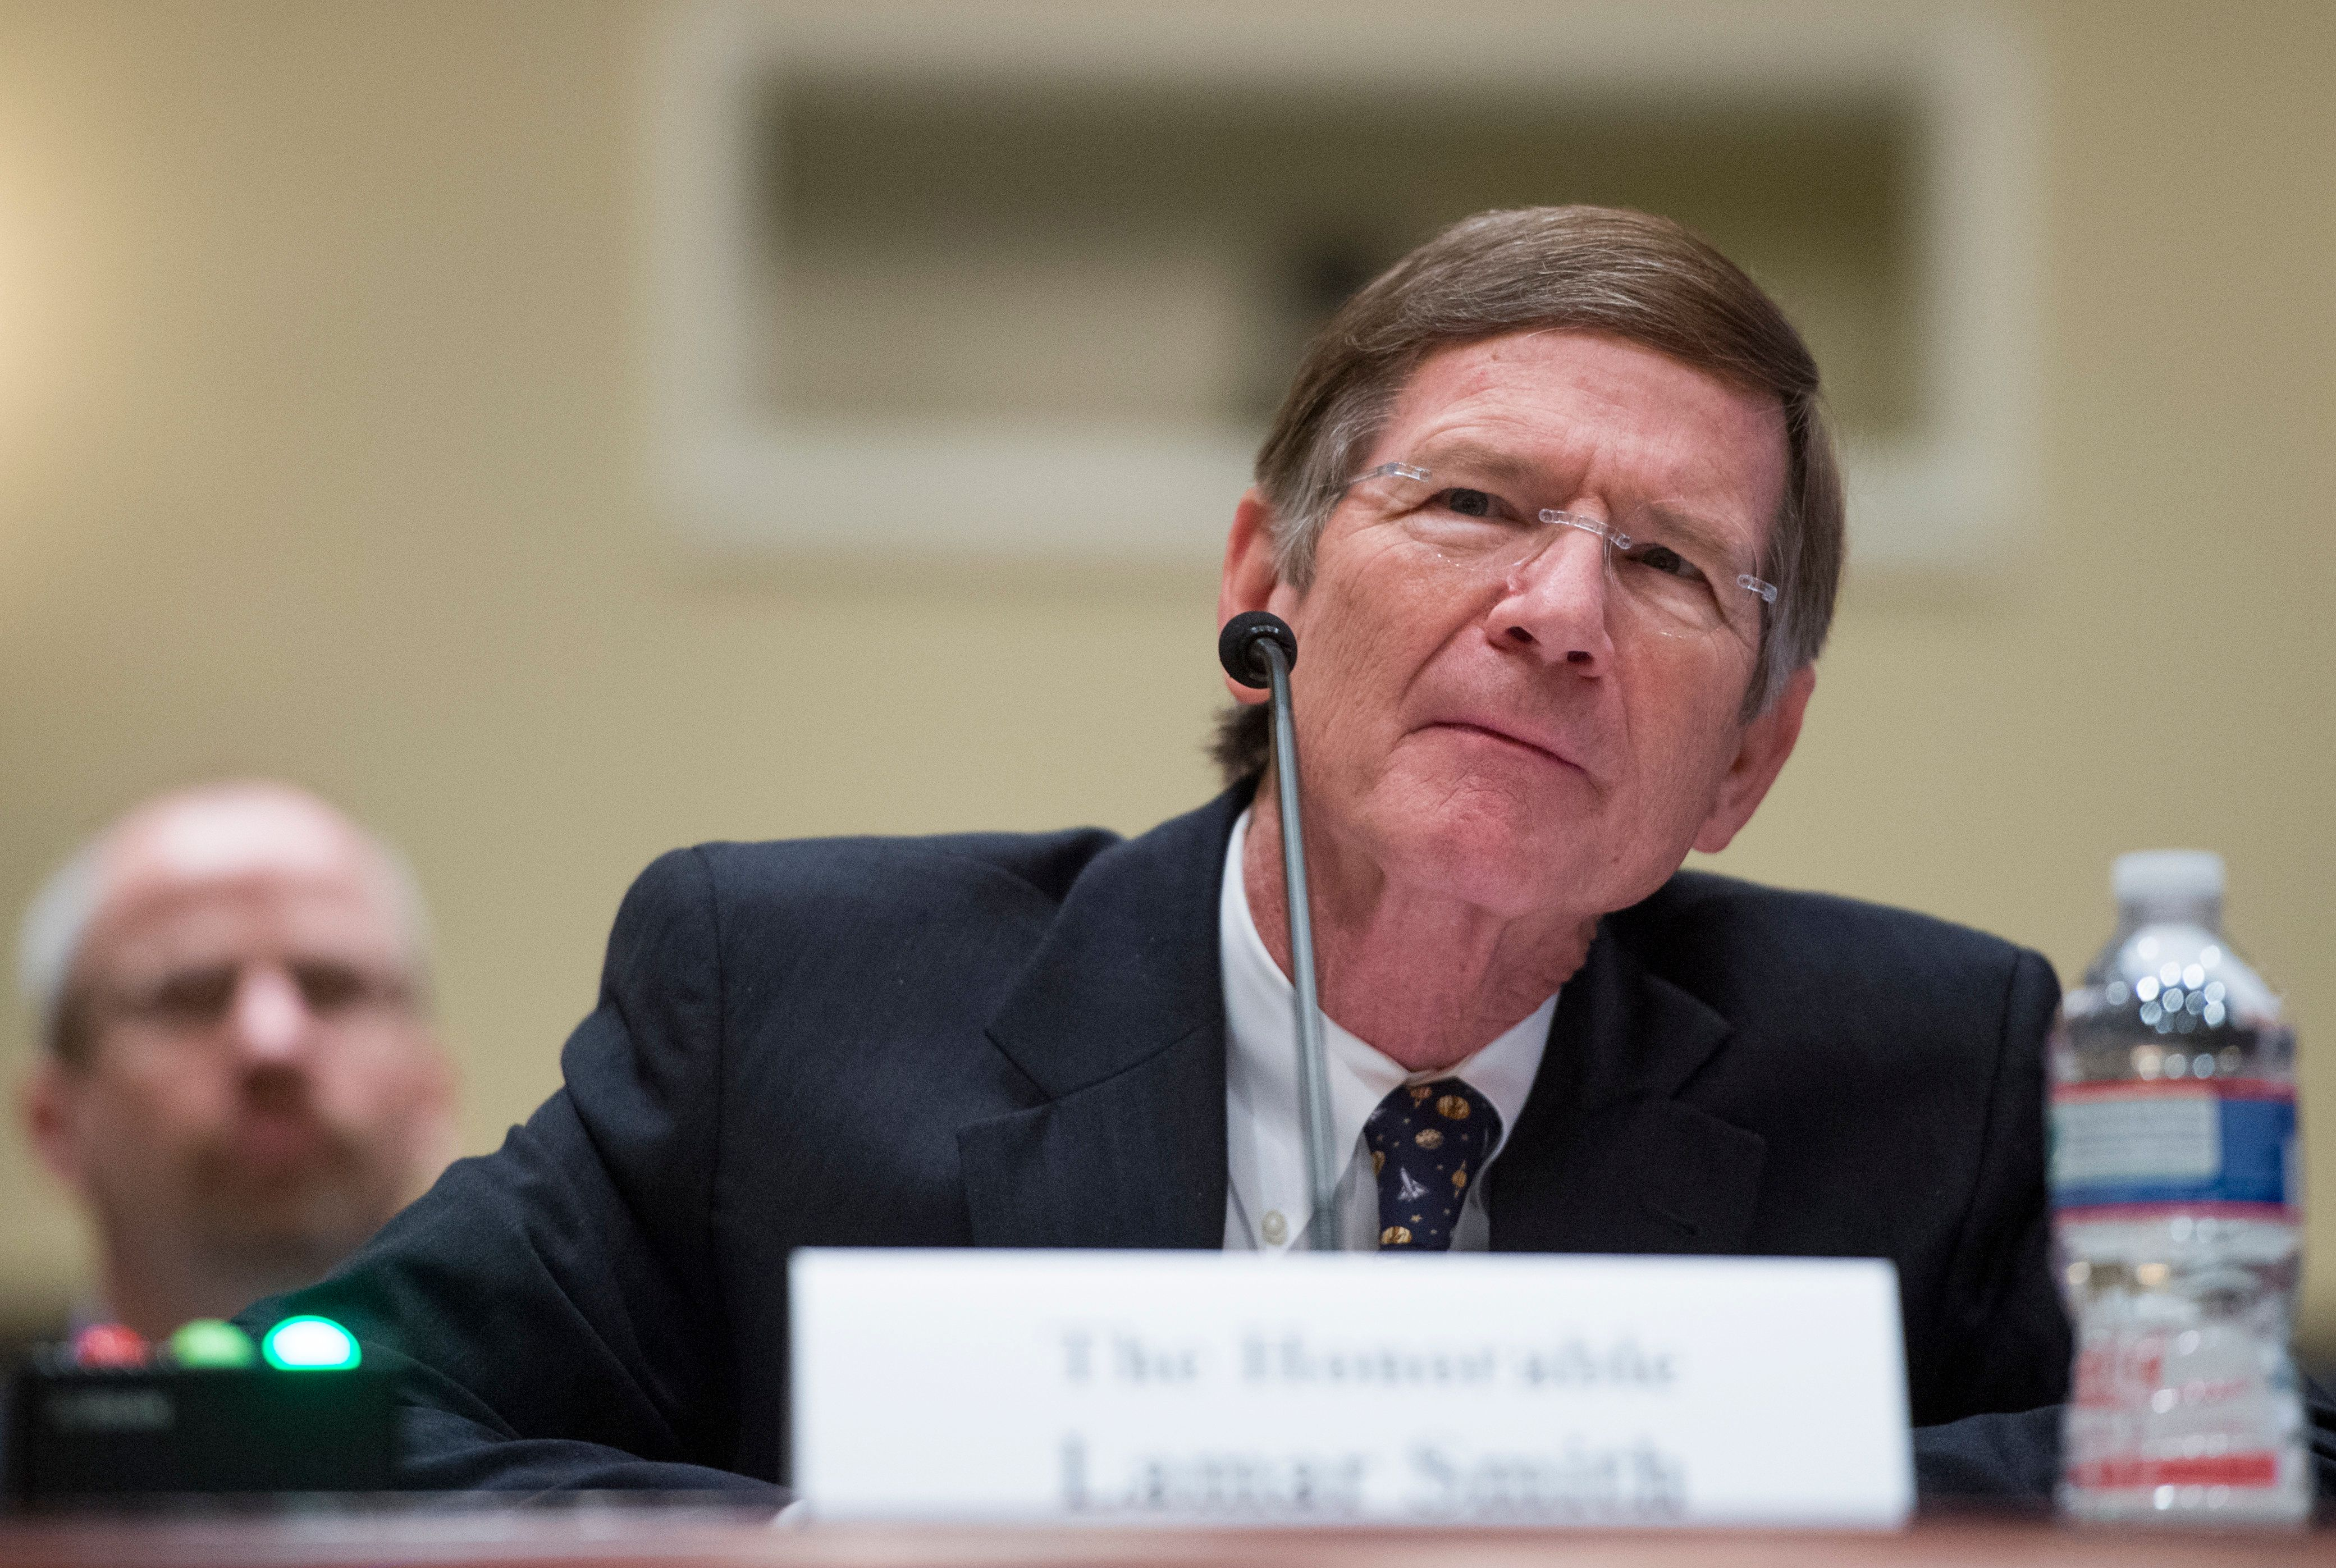 Rep. Lamar Smith (R-Texas), the 14th-longest-serving member of the U.S. House, retired in January.